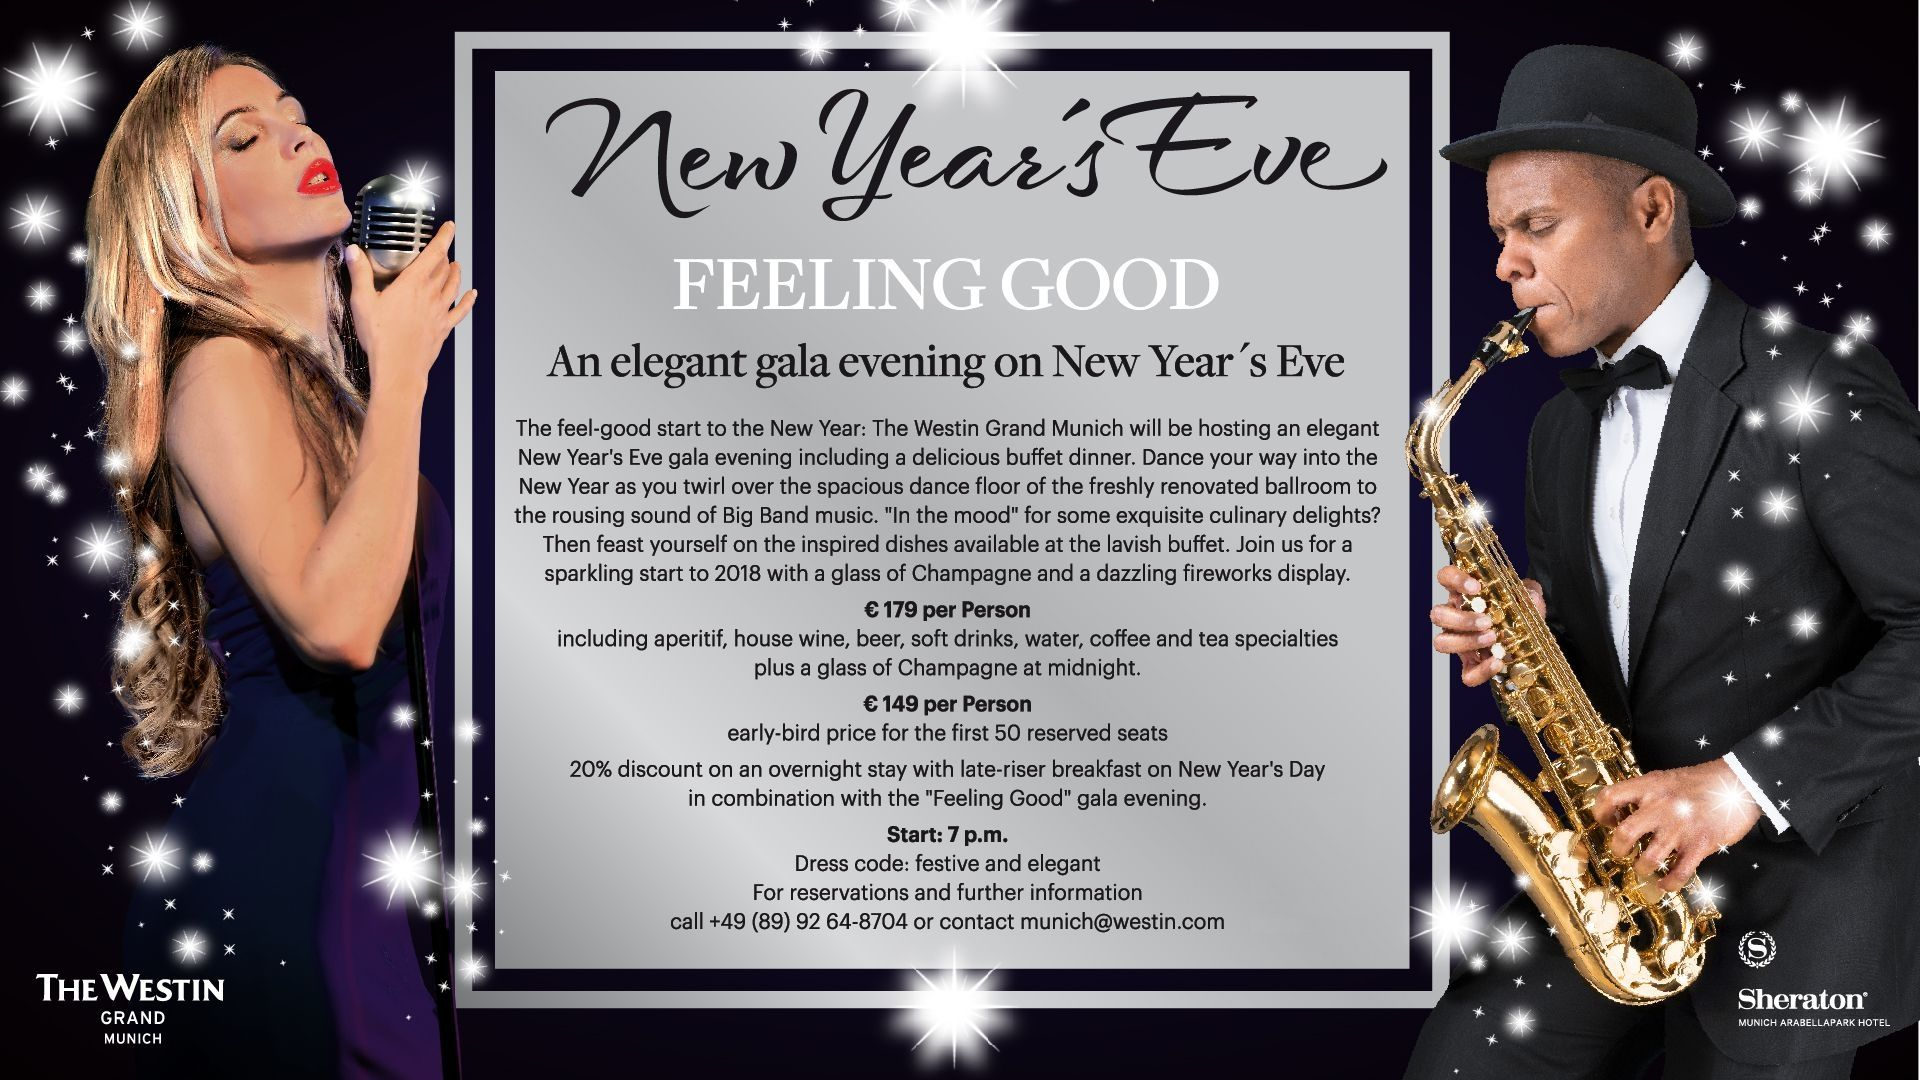 New Year's Eve at The Westin Grand